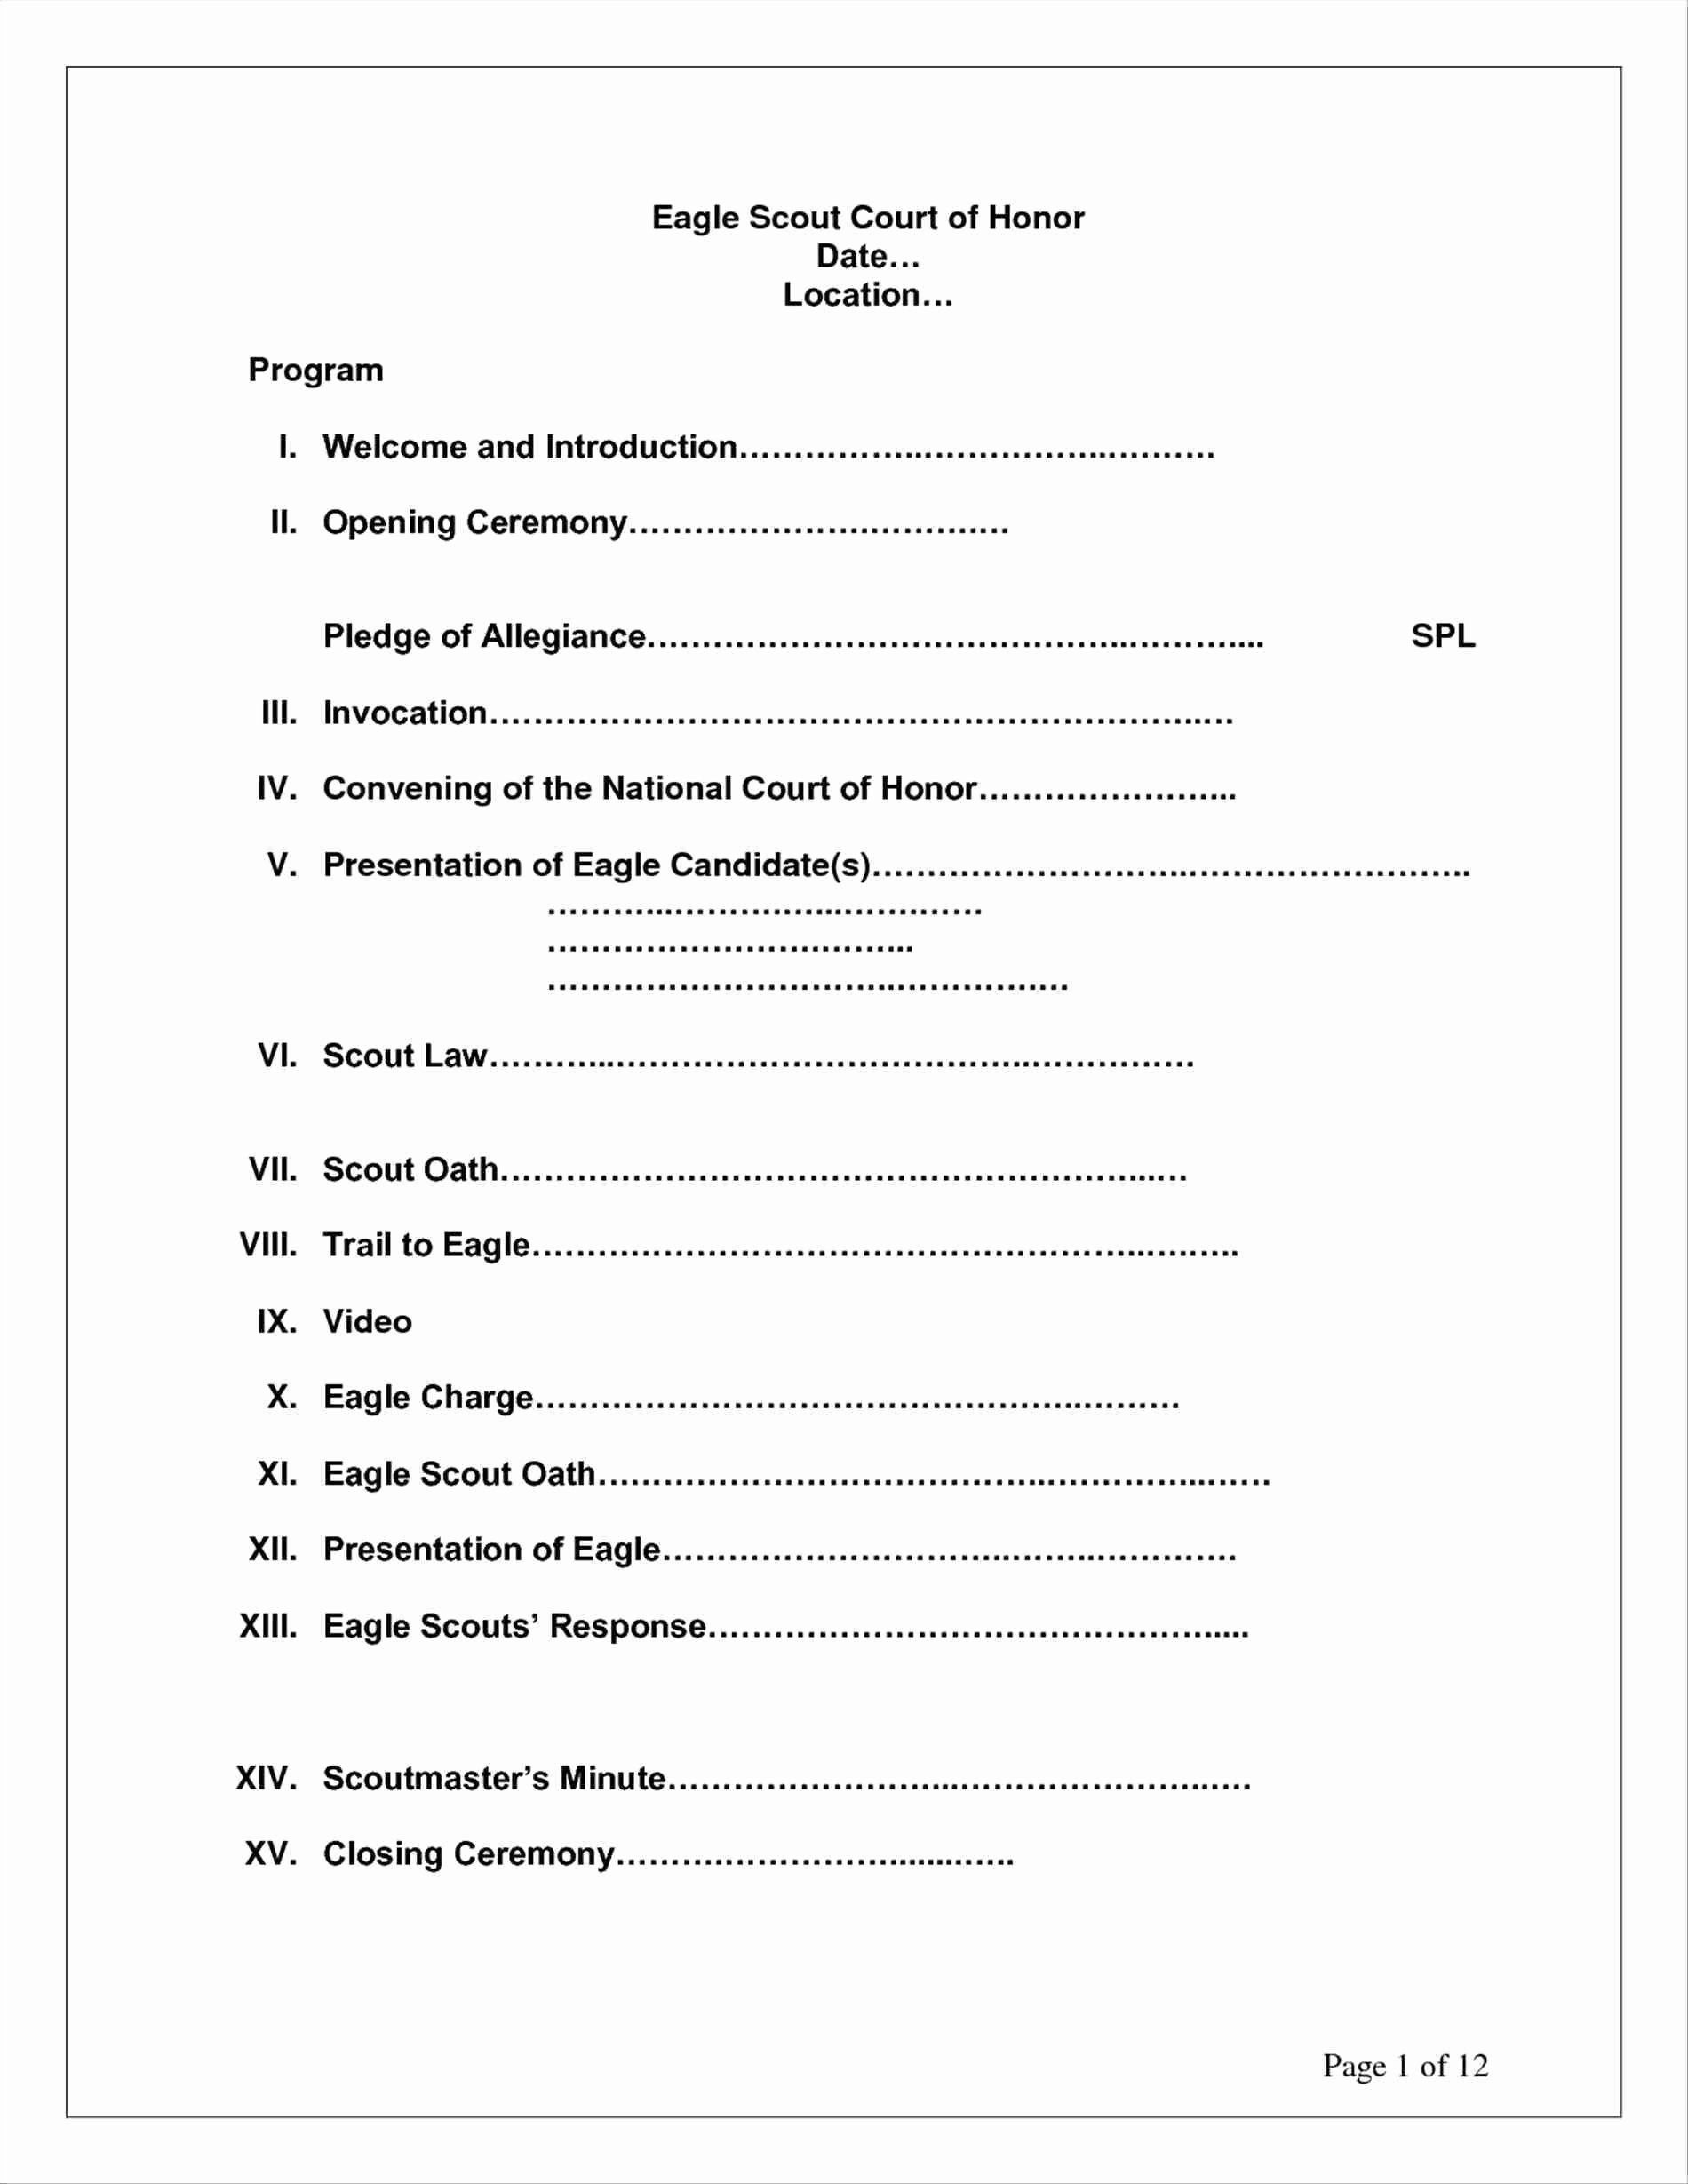 Awesome Eagle Scout Court Honor Program Template Eagle